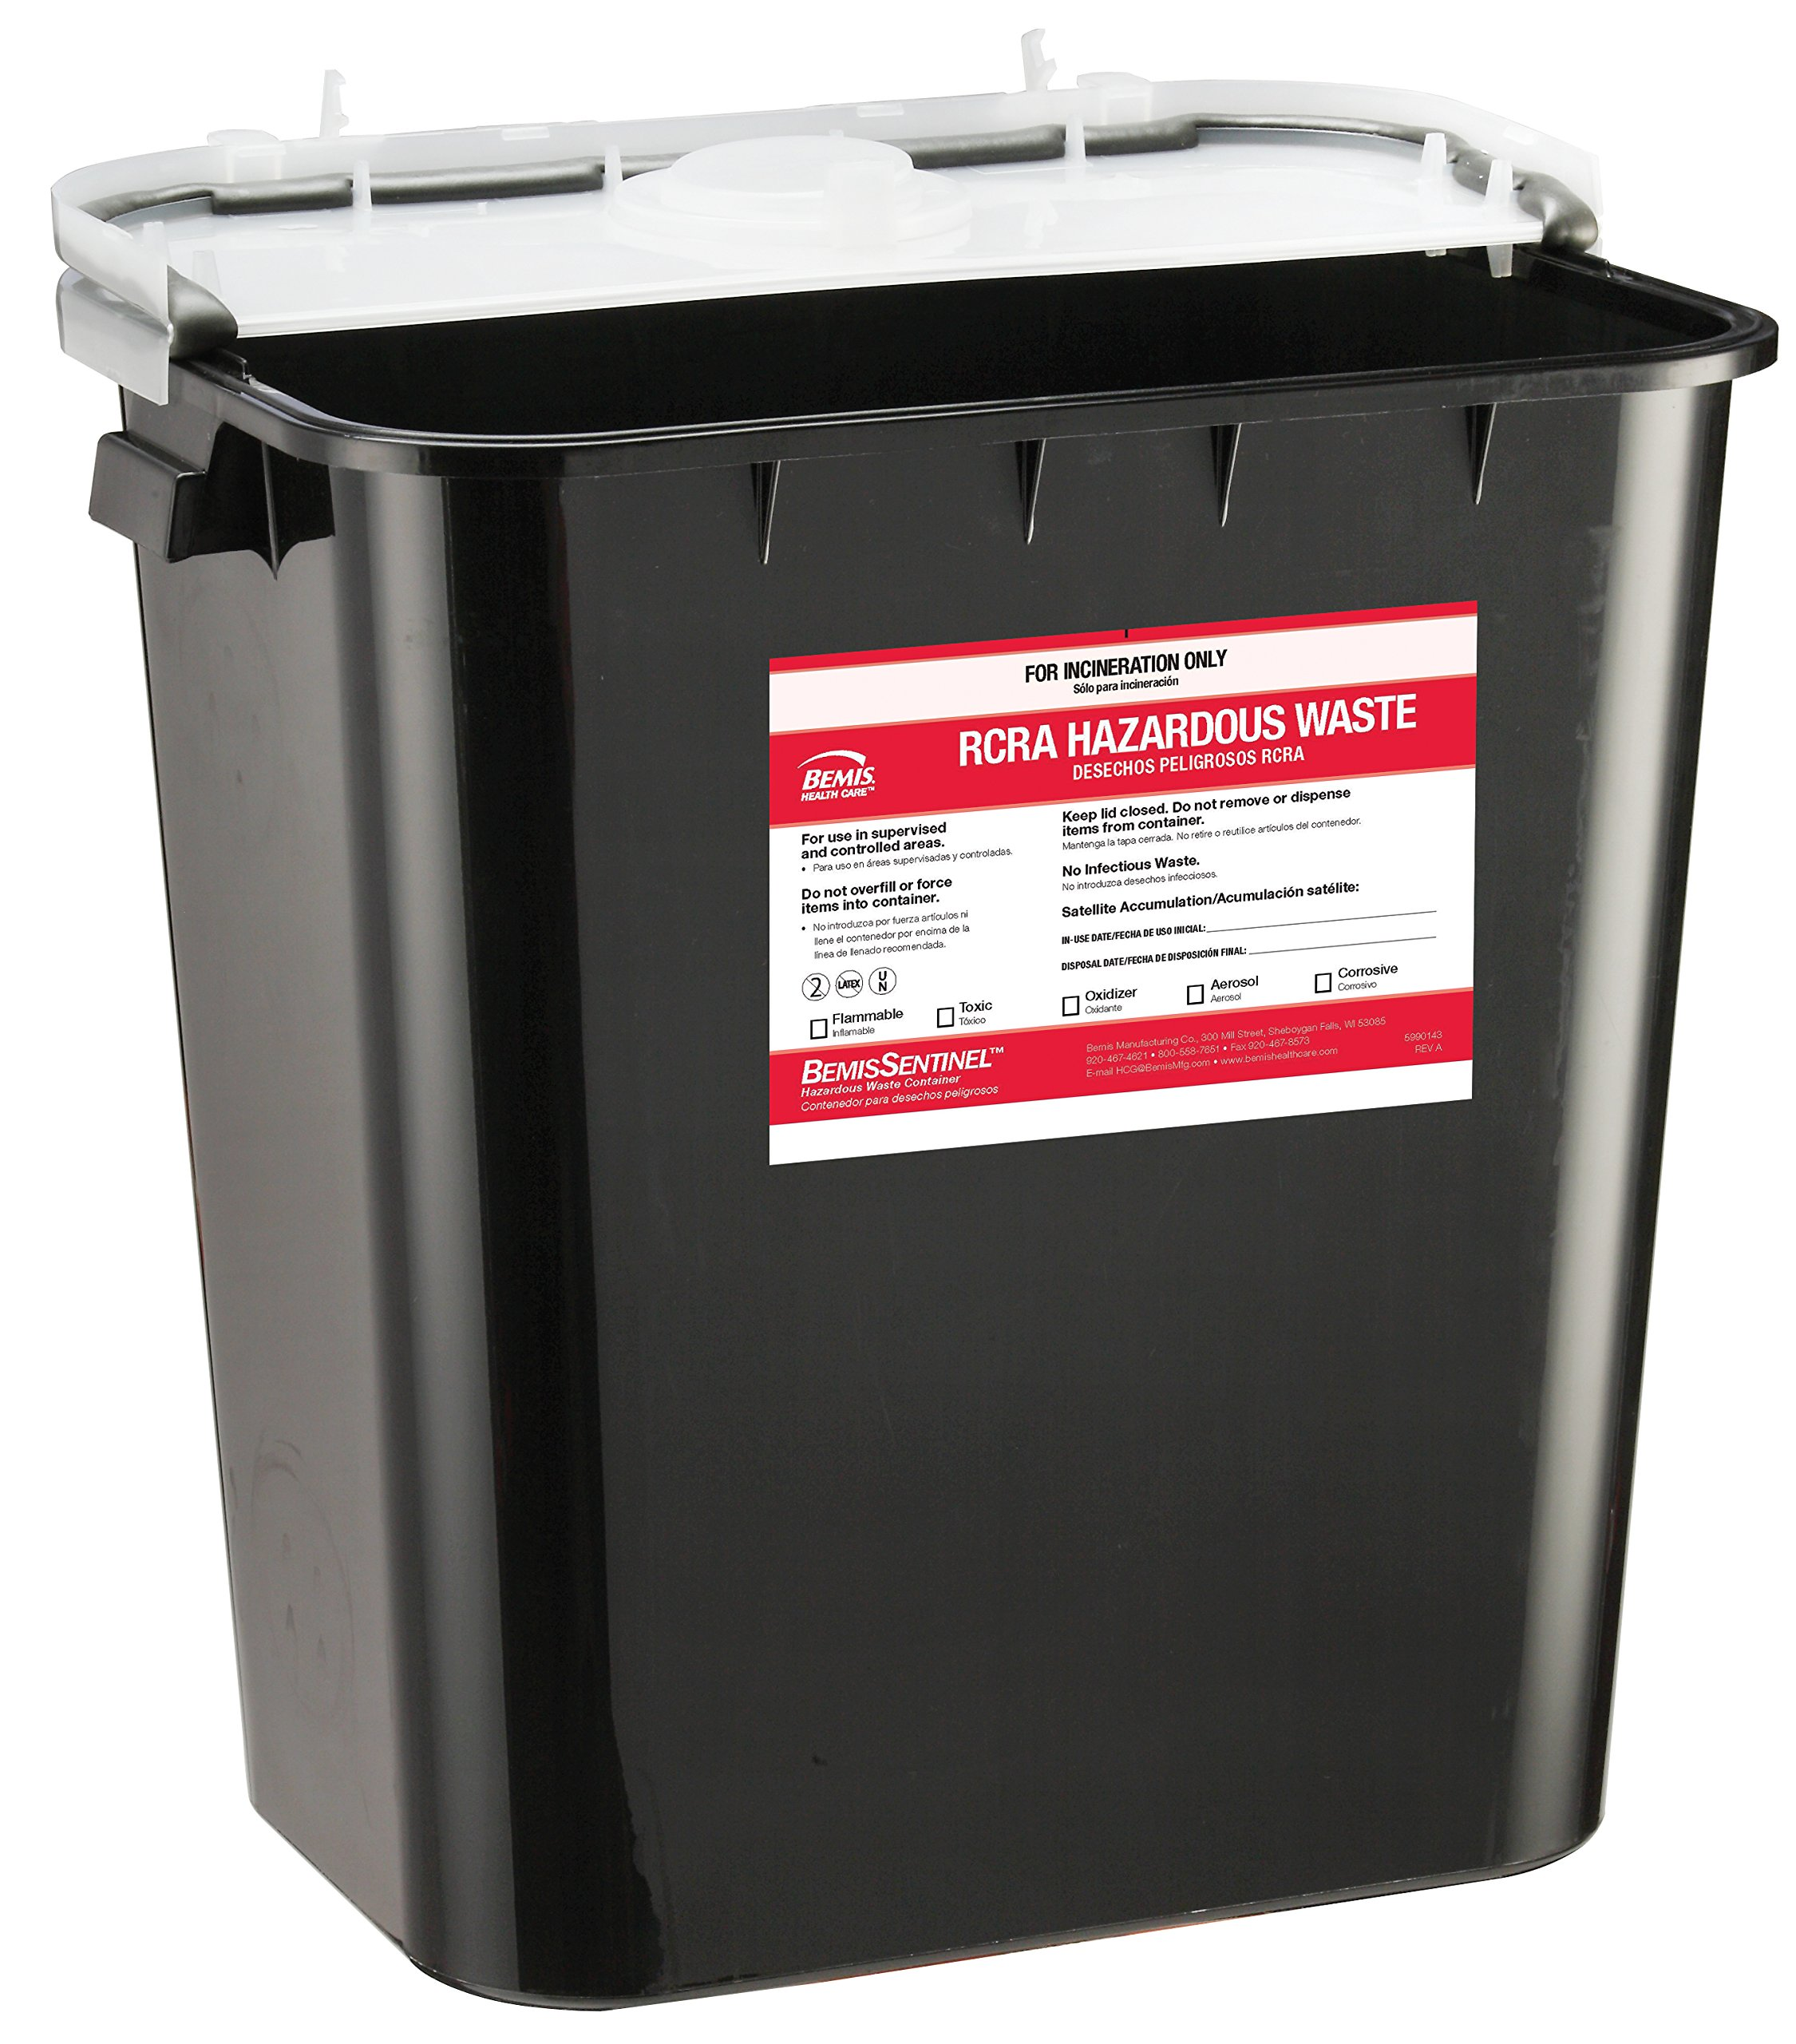 Bemis Healthcare 5008070-10 8 gal RCRA Hazardous Chemical Waste Container, Black (Pack of 10)